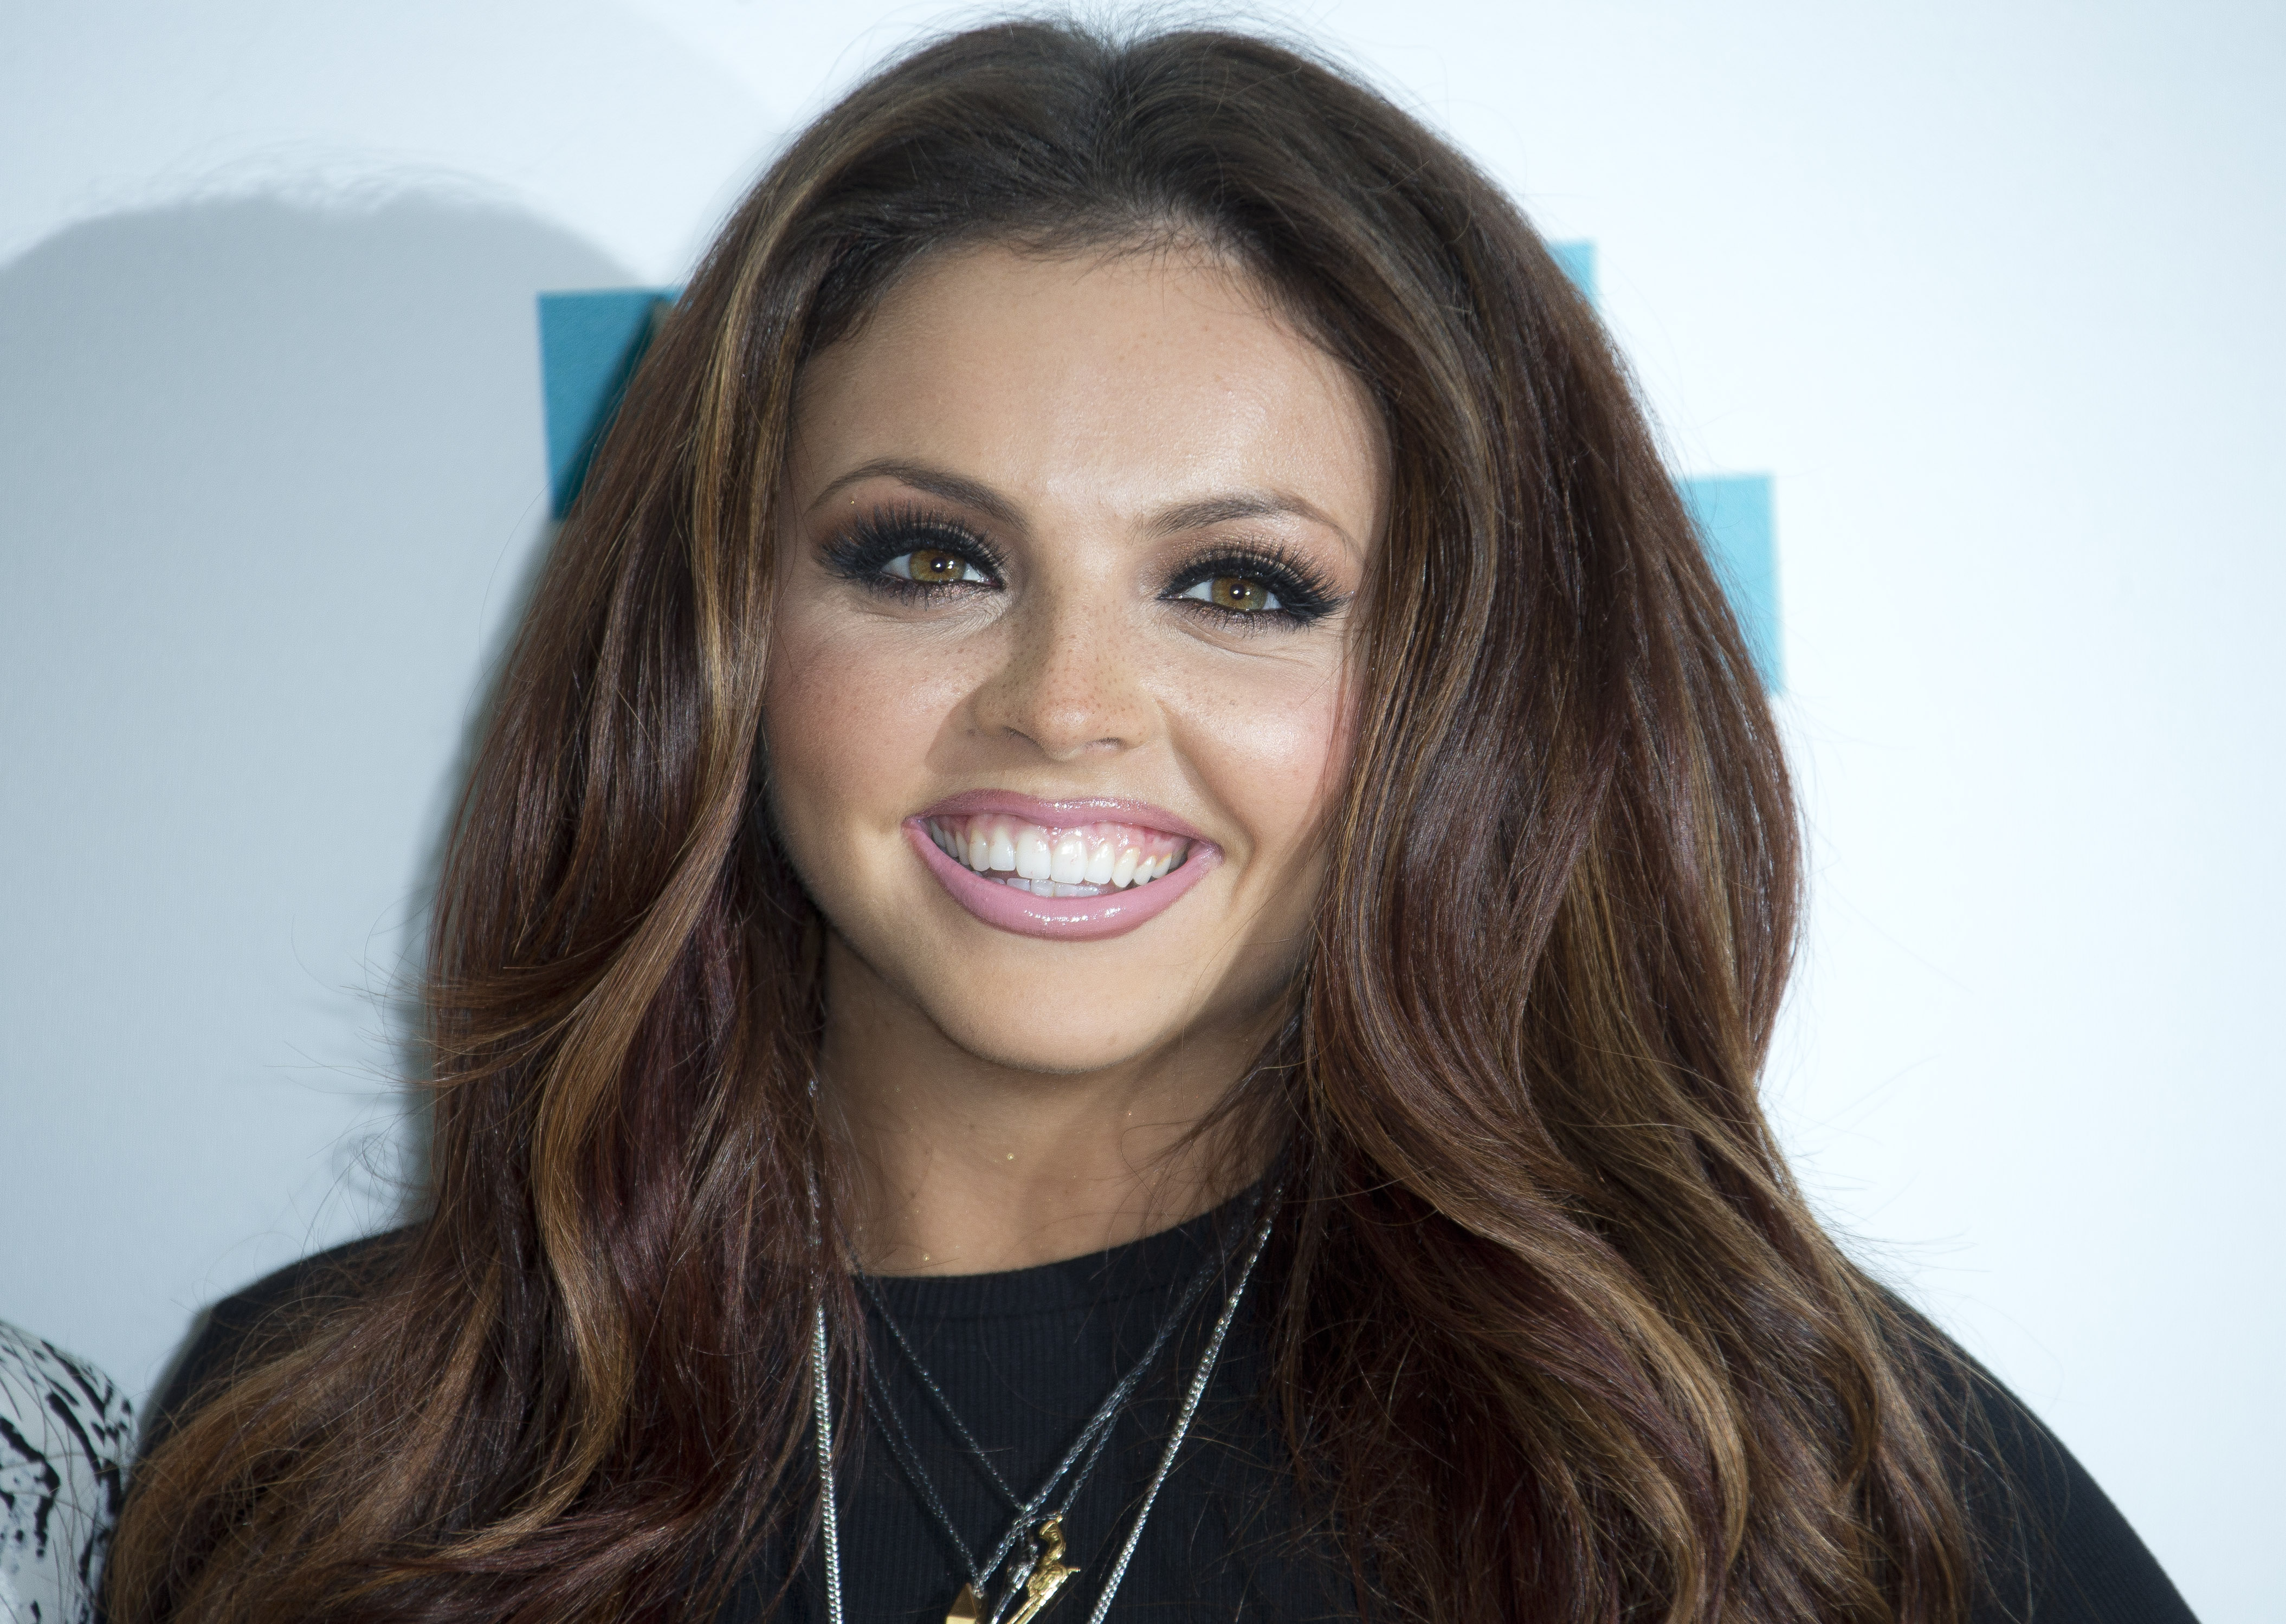 British girl band member of Little Mix, Jesy Nelson, poses for photographs during a photo call to unveil their make up range, at a hotel in London, Tuesday, Sept. 24, 2013. (Photo by Joel Ryan/Invision/AP)